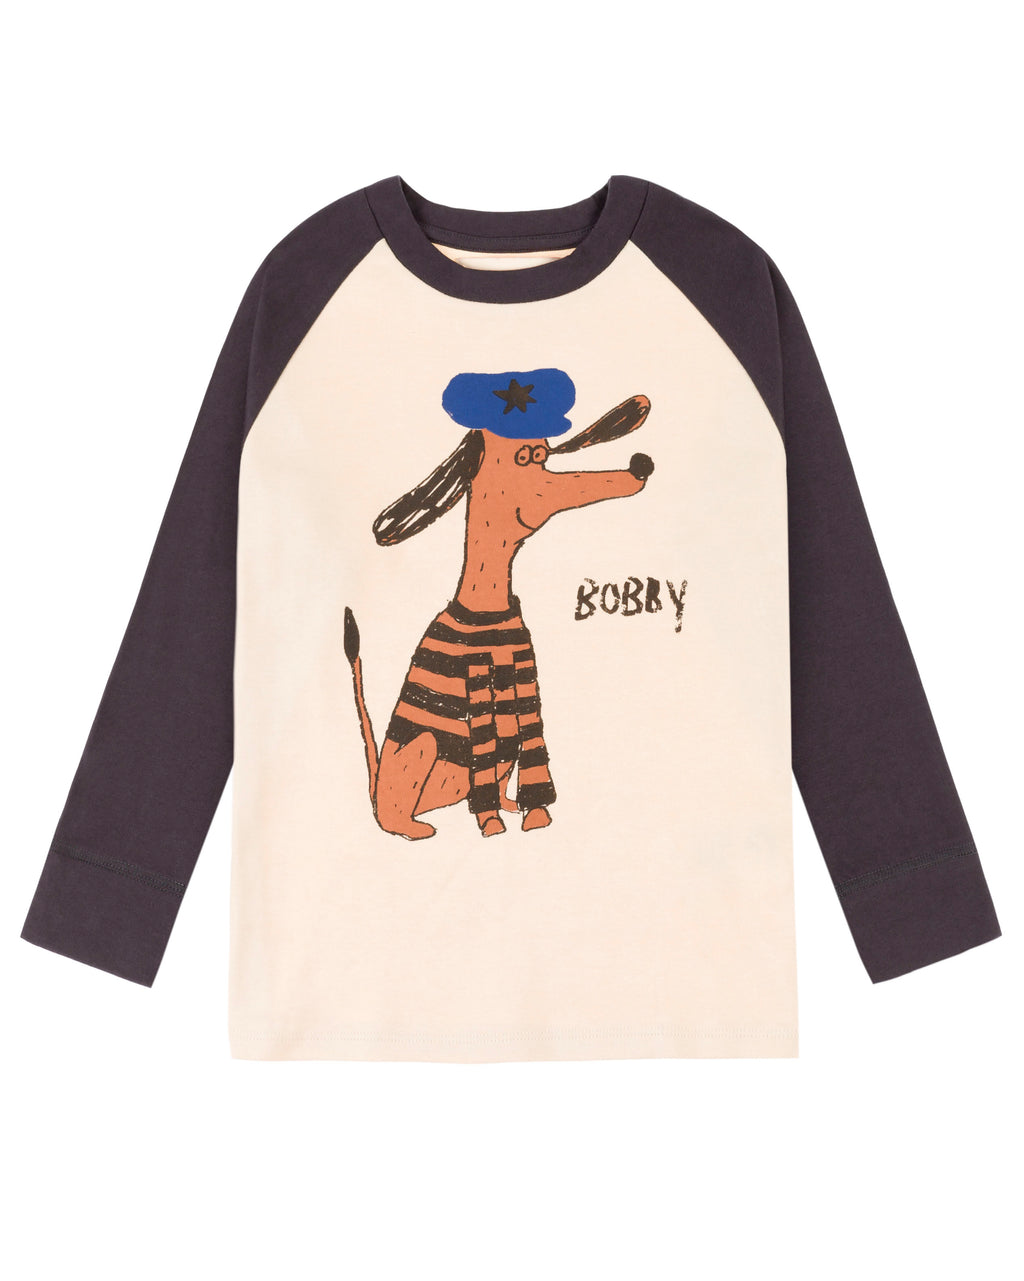 Bobby Long Sleeve T Shirt